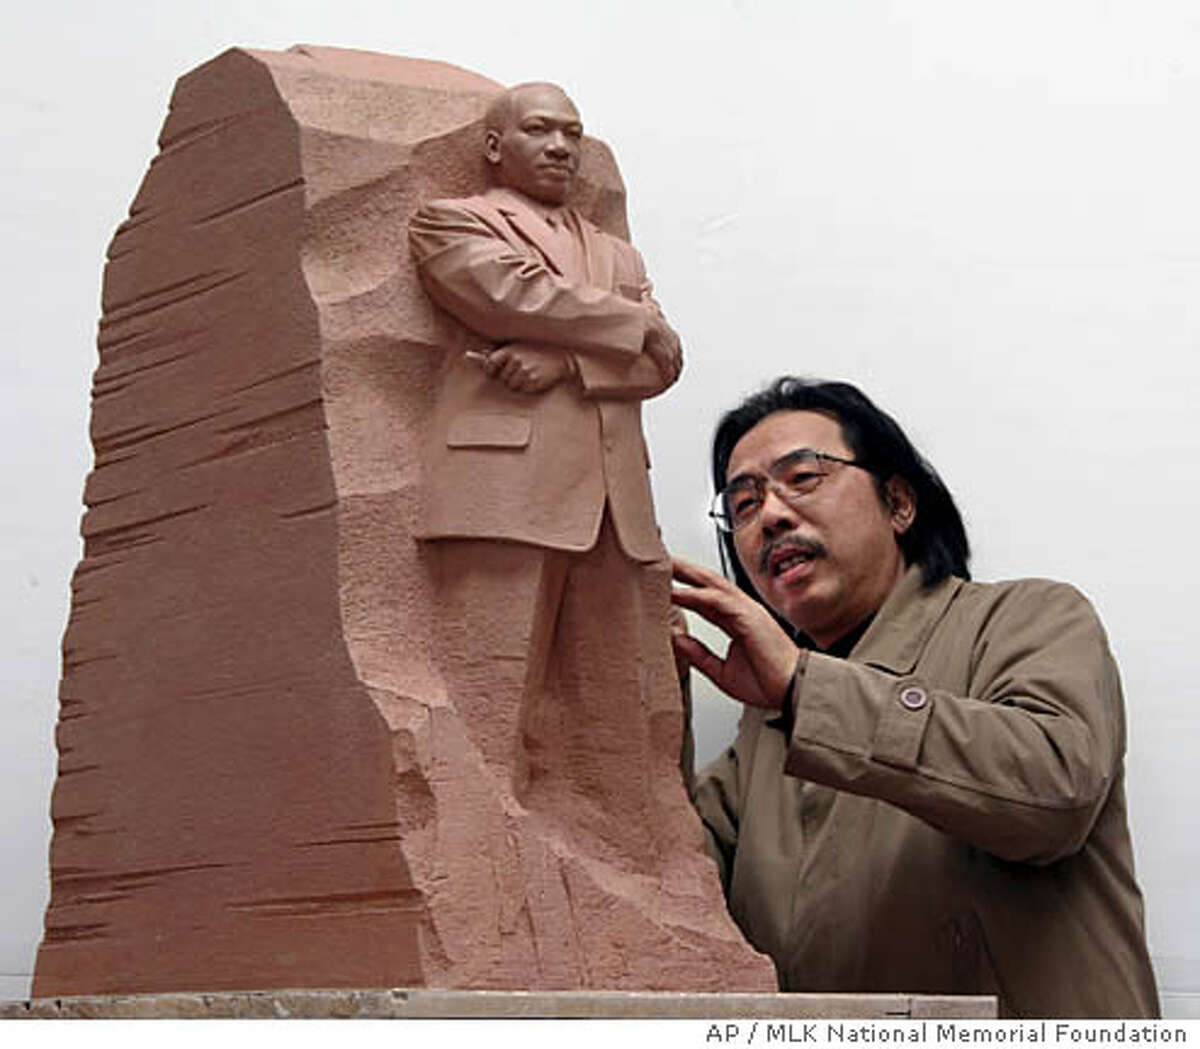 In this undated photograph released by the MLK National Memorial Foundation, sculptor Master Lei Yixin of China looks at a scale model of the